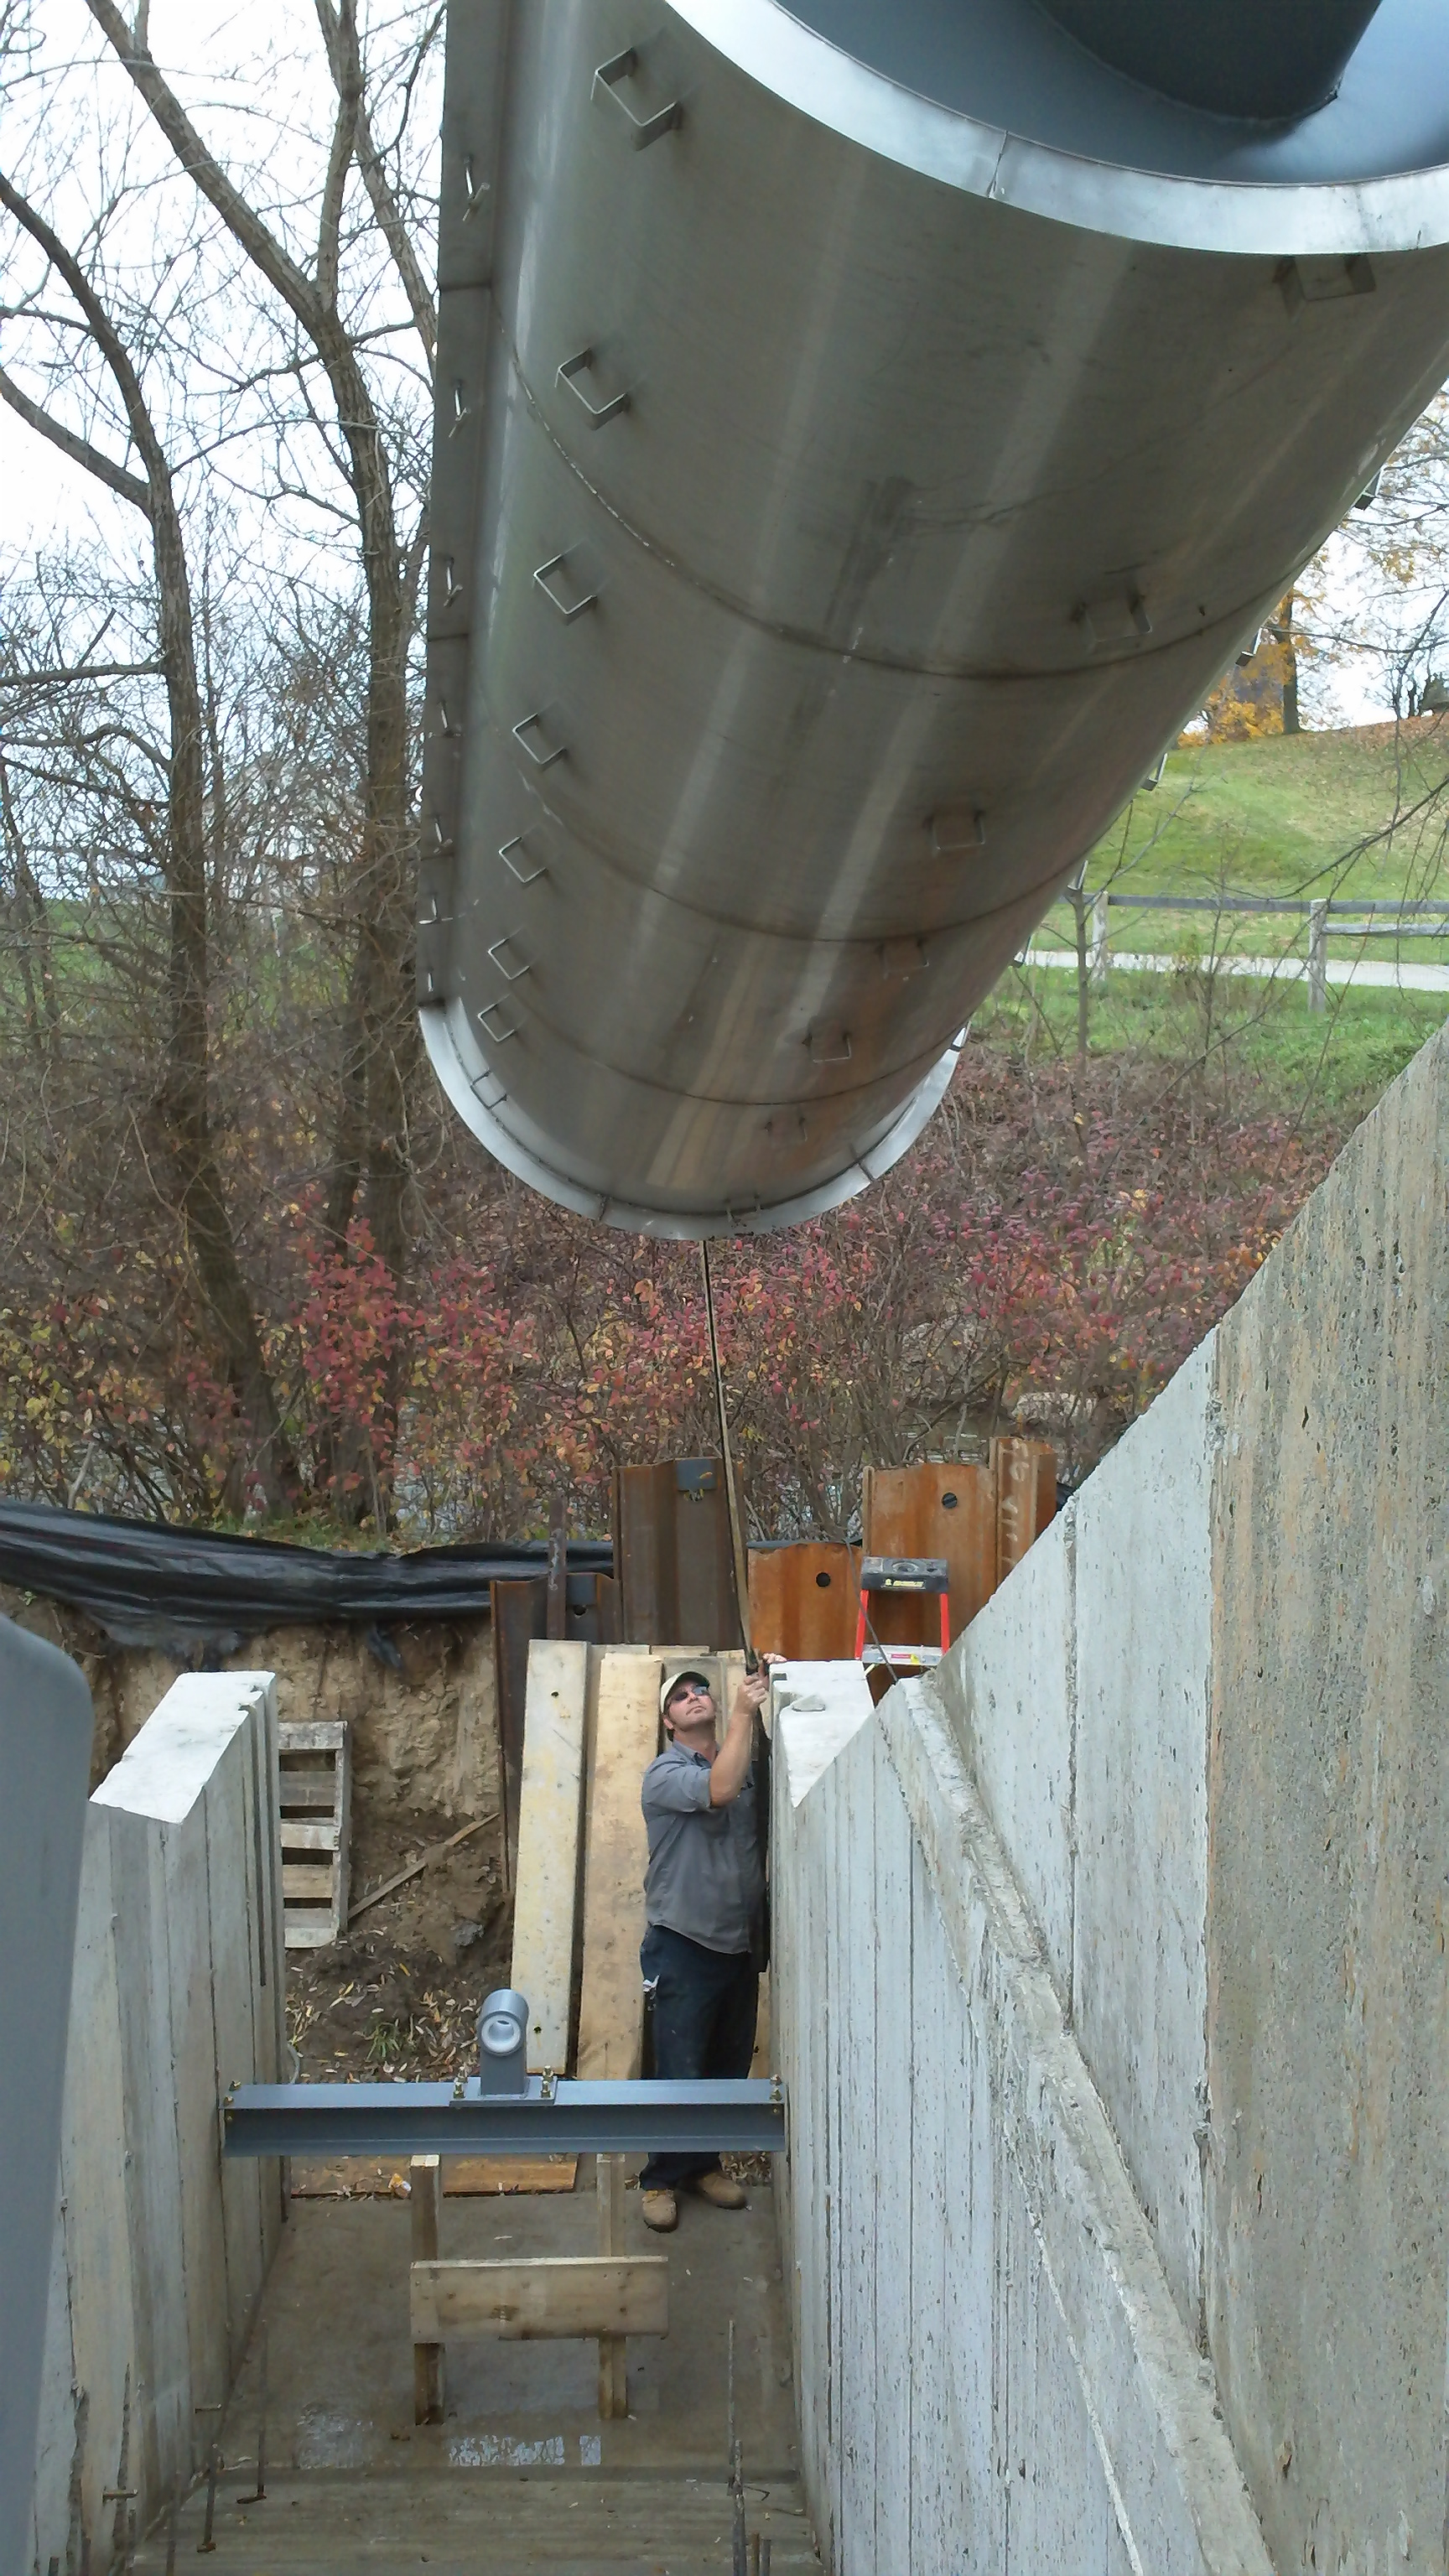 archimedes screw and trough being craned into place